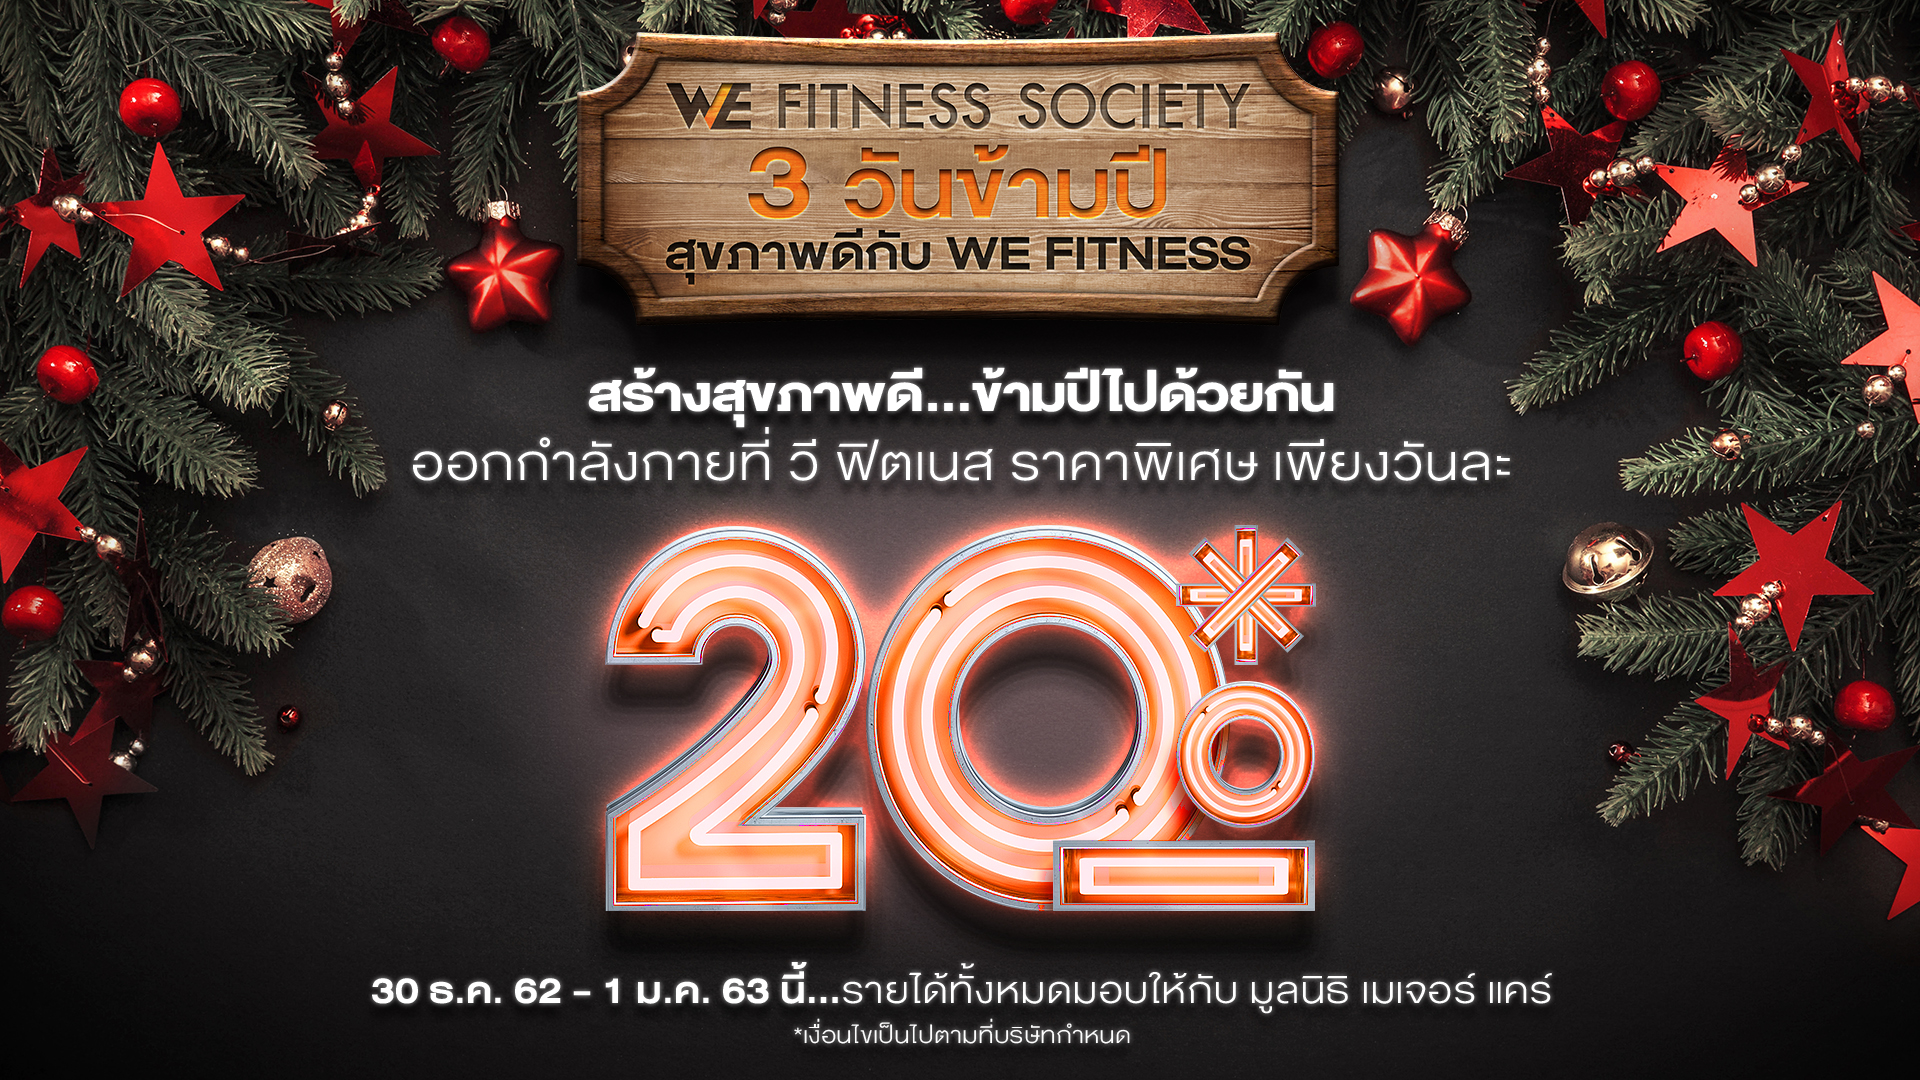 We Fitness Special Gift for 2019